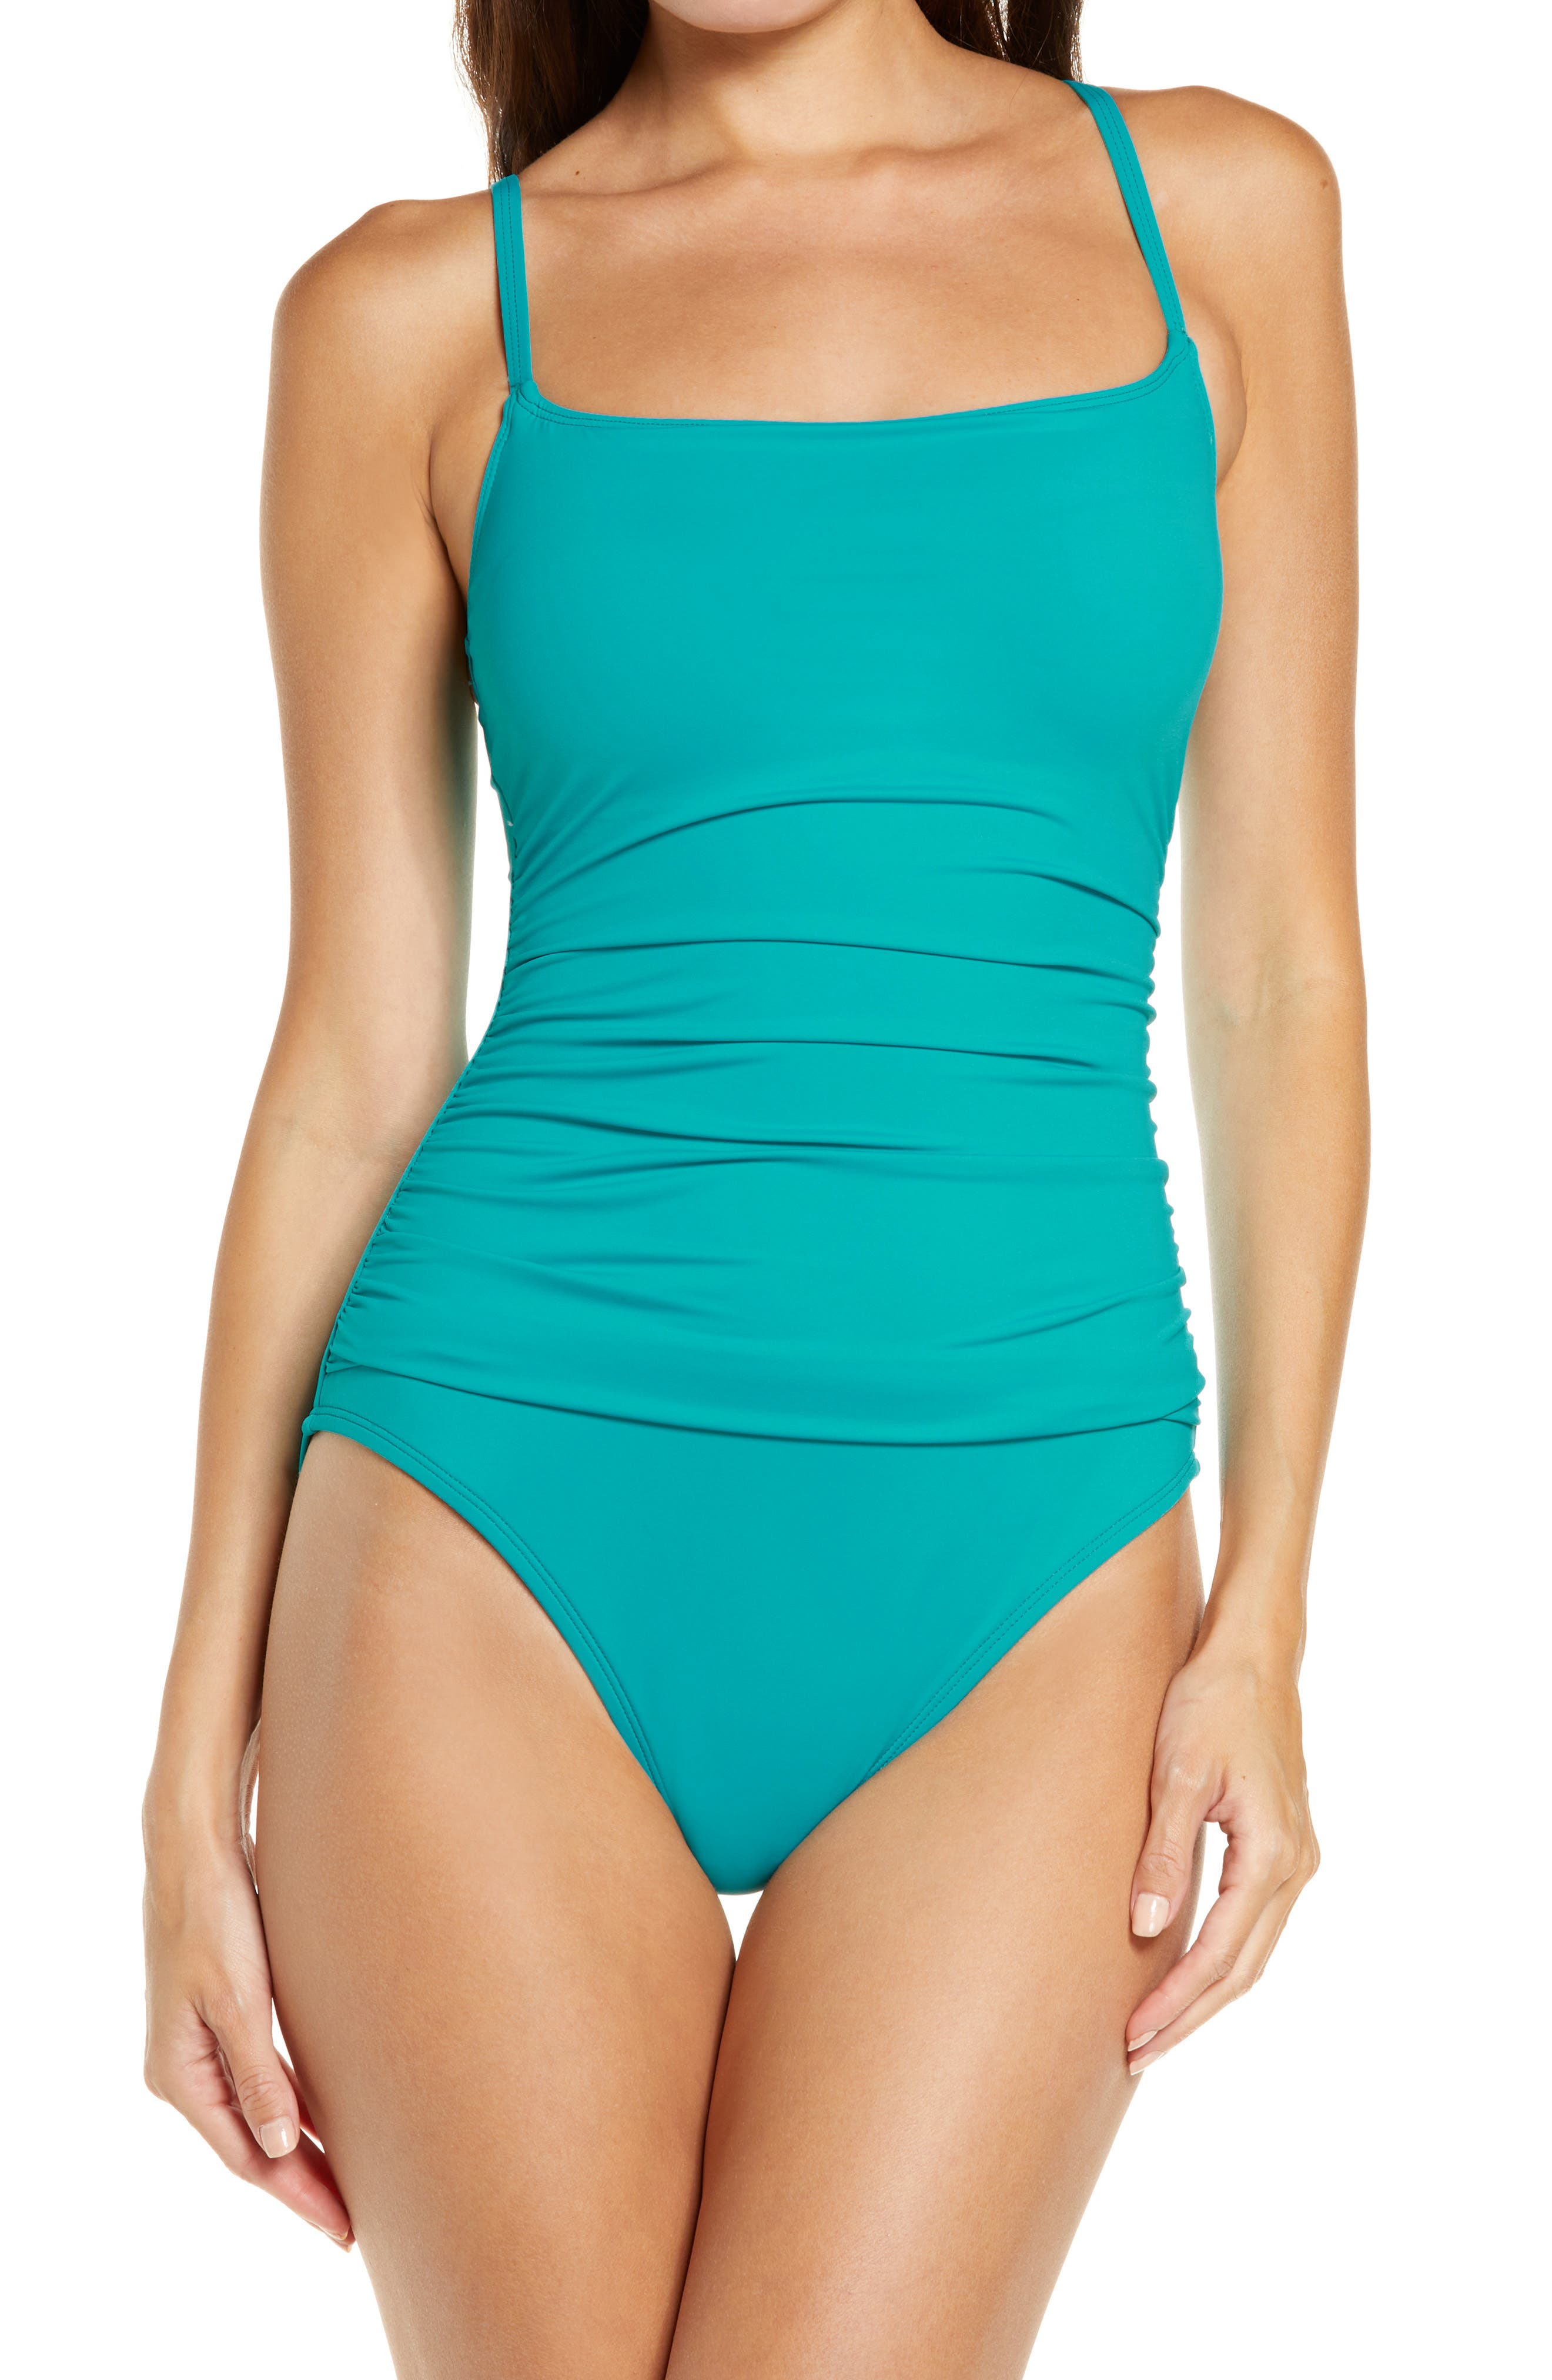 9f7edd2cc4c21 Swimming Costumes For Big Busts   Pour Moi Glamazon Halter ... Sc 1 ...